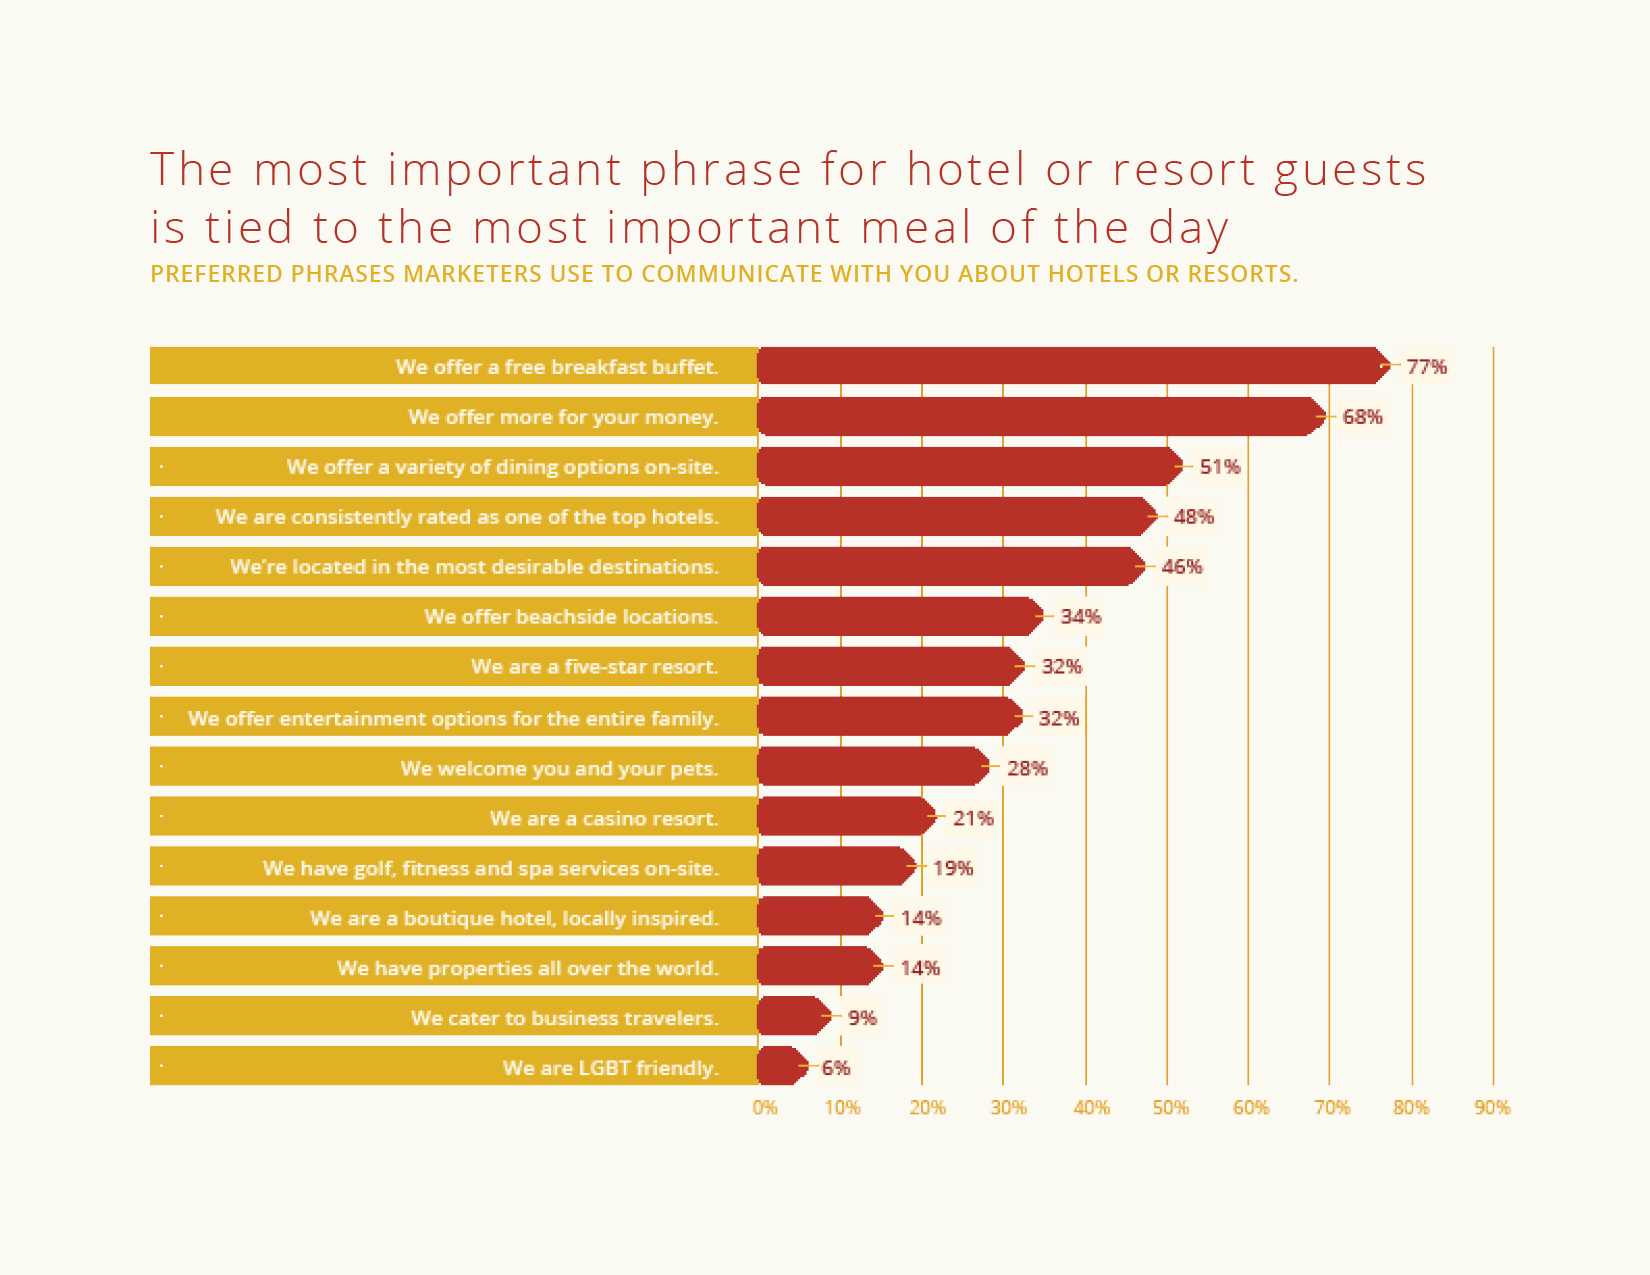 The Most Important Phrase for Hotel Guests is Tied to the Most Important Meal of the Day